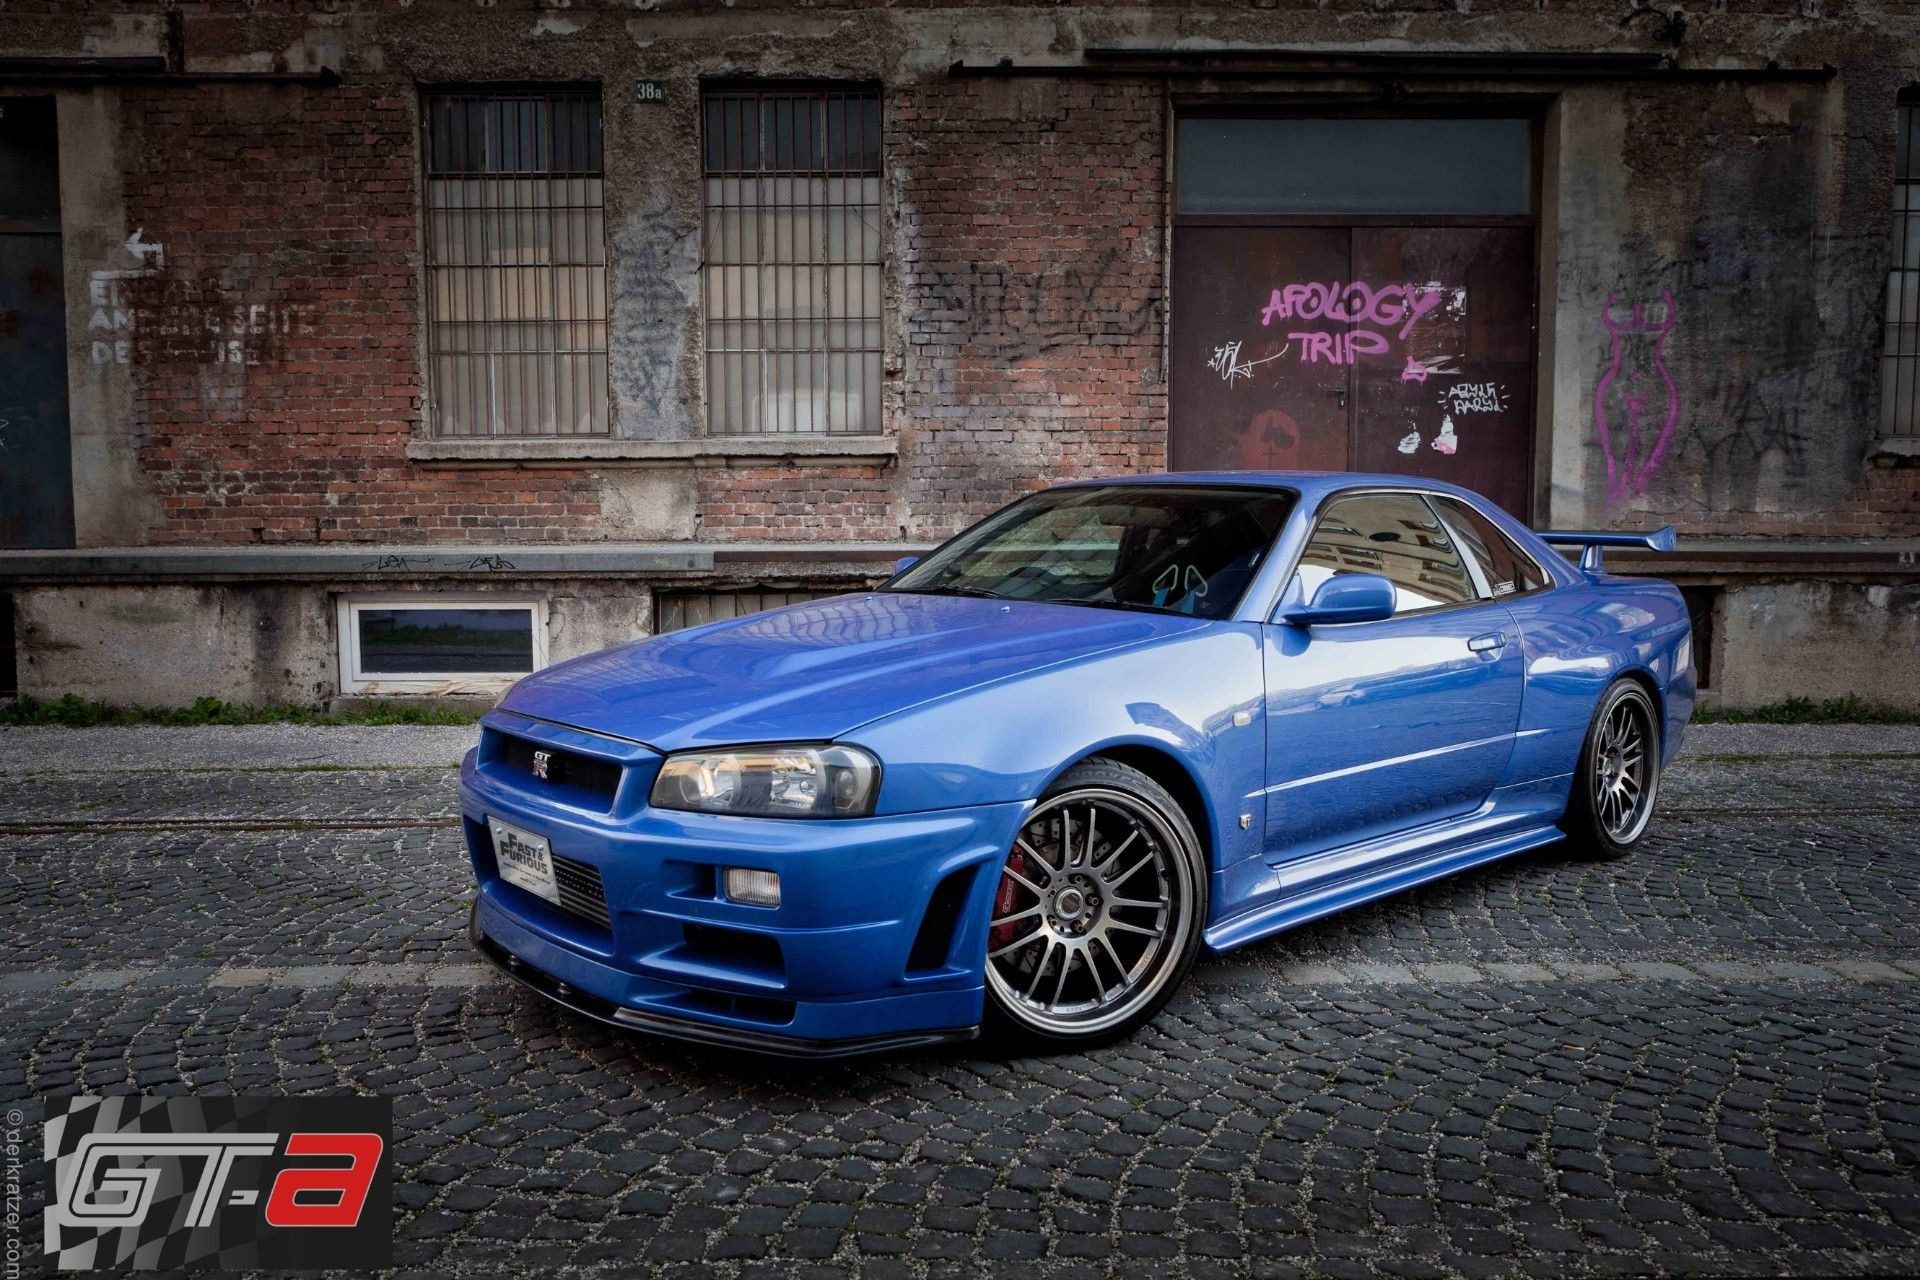 Paul Walkers Fast Furious 4 R34 Nissan Gt R For Sale Priced At How To Half Manual Power Window Zilvianet Forums 135 Million